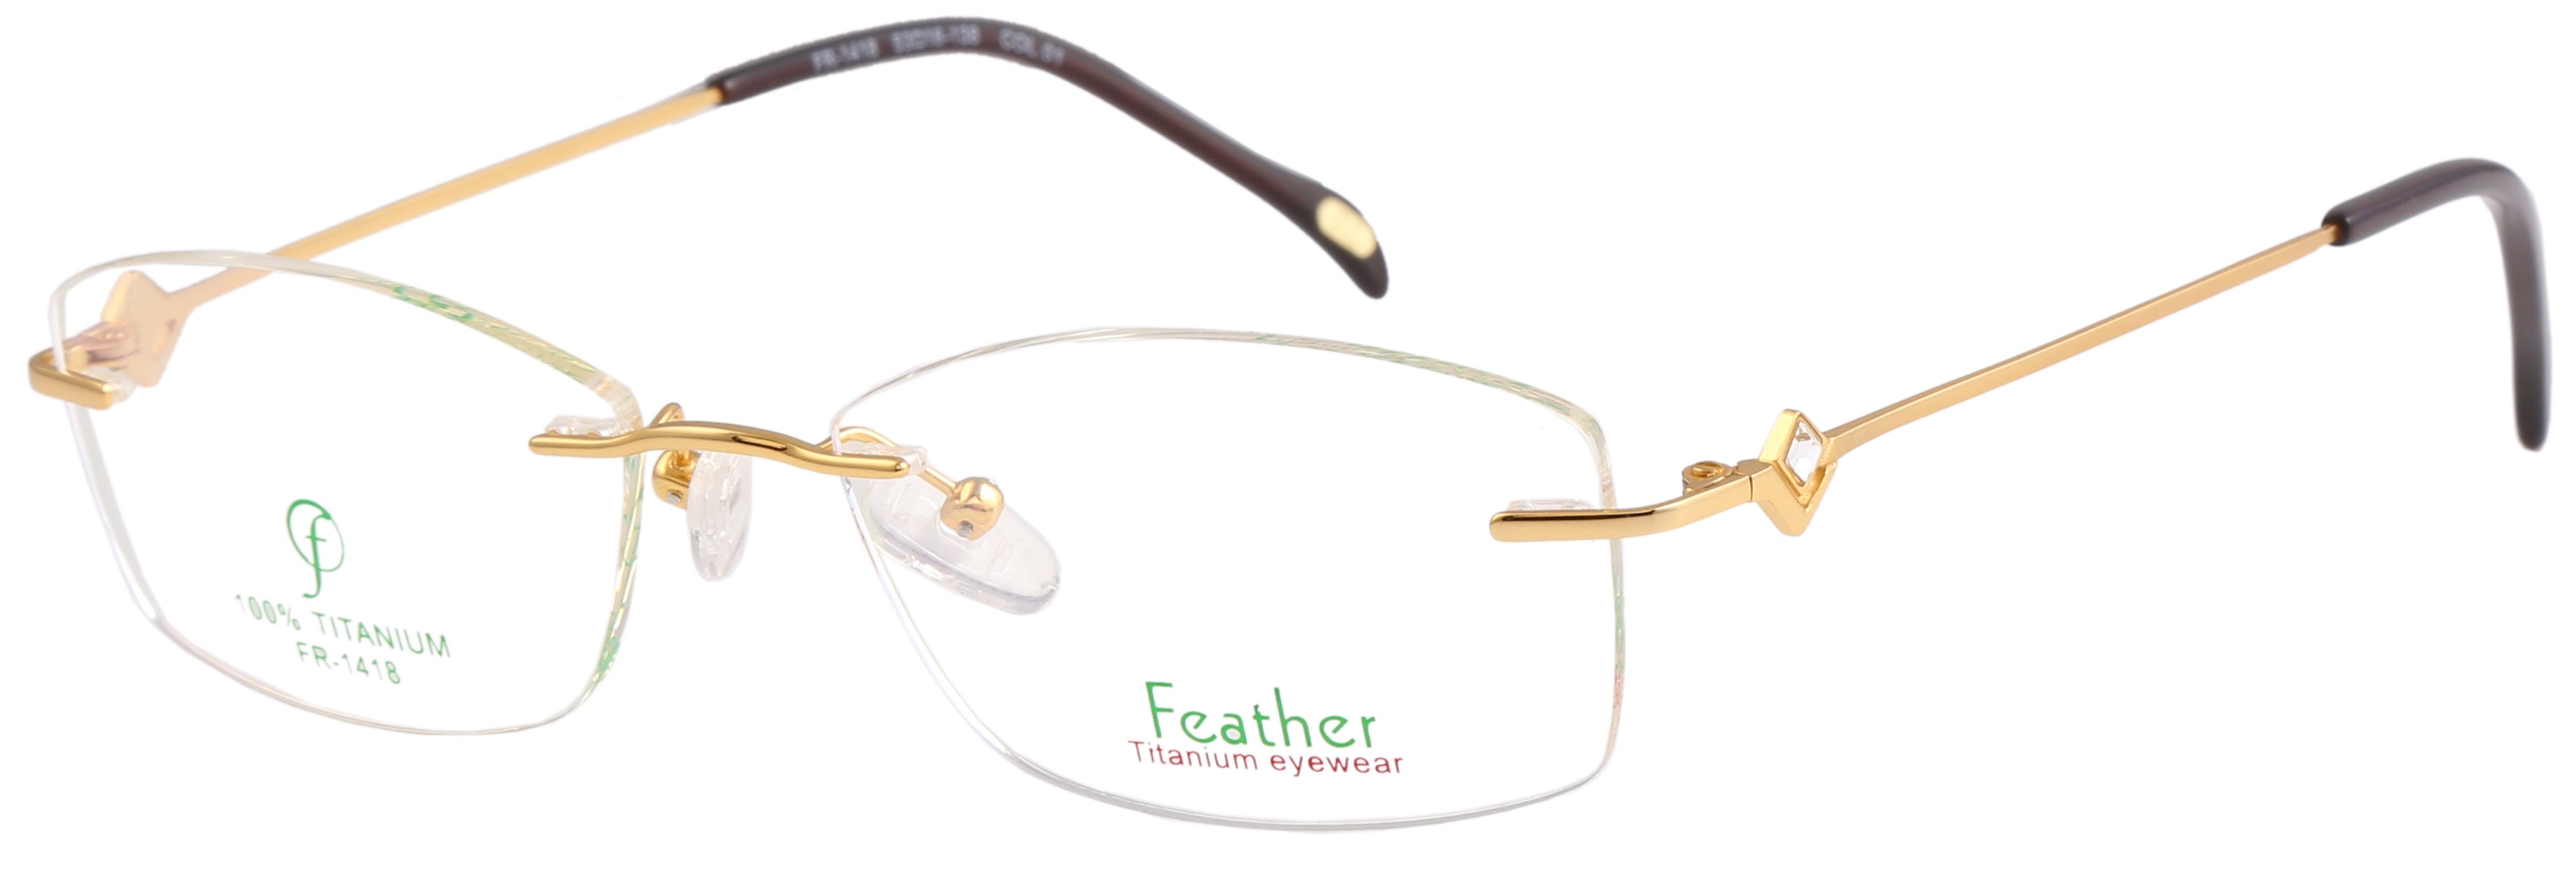 Feather Model No FR-1418